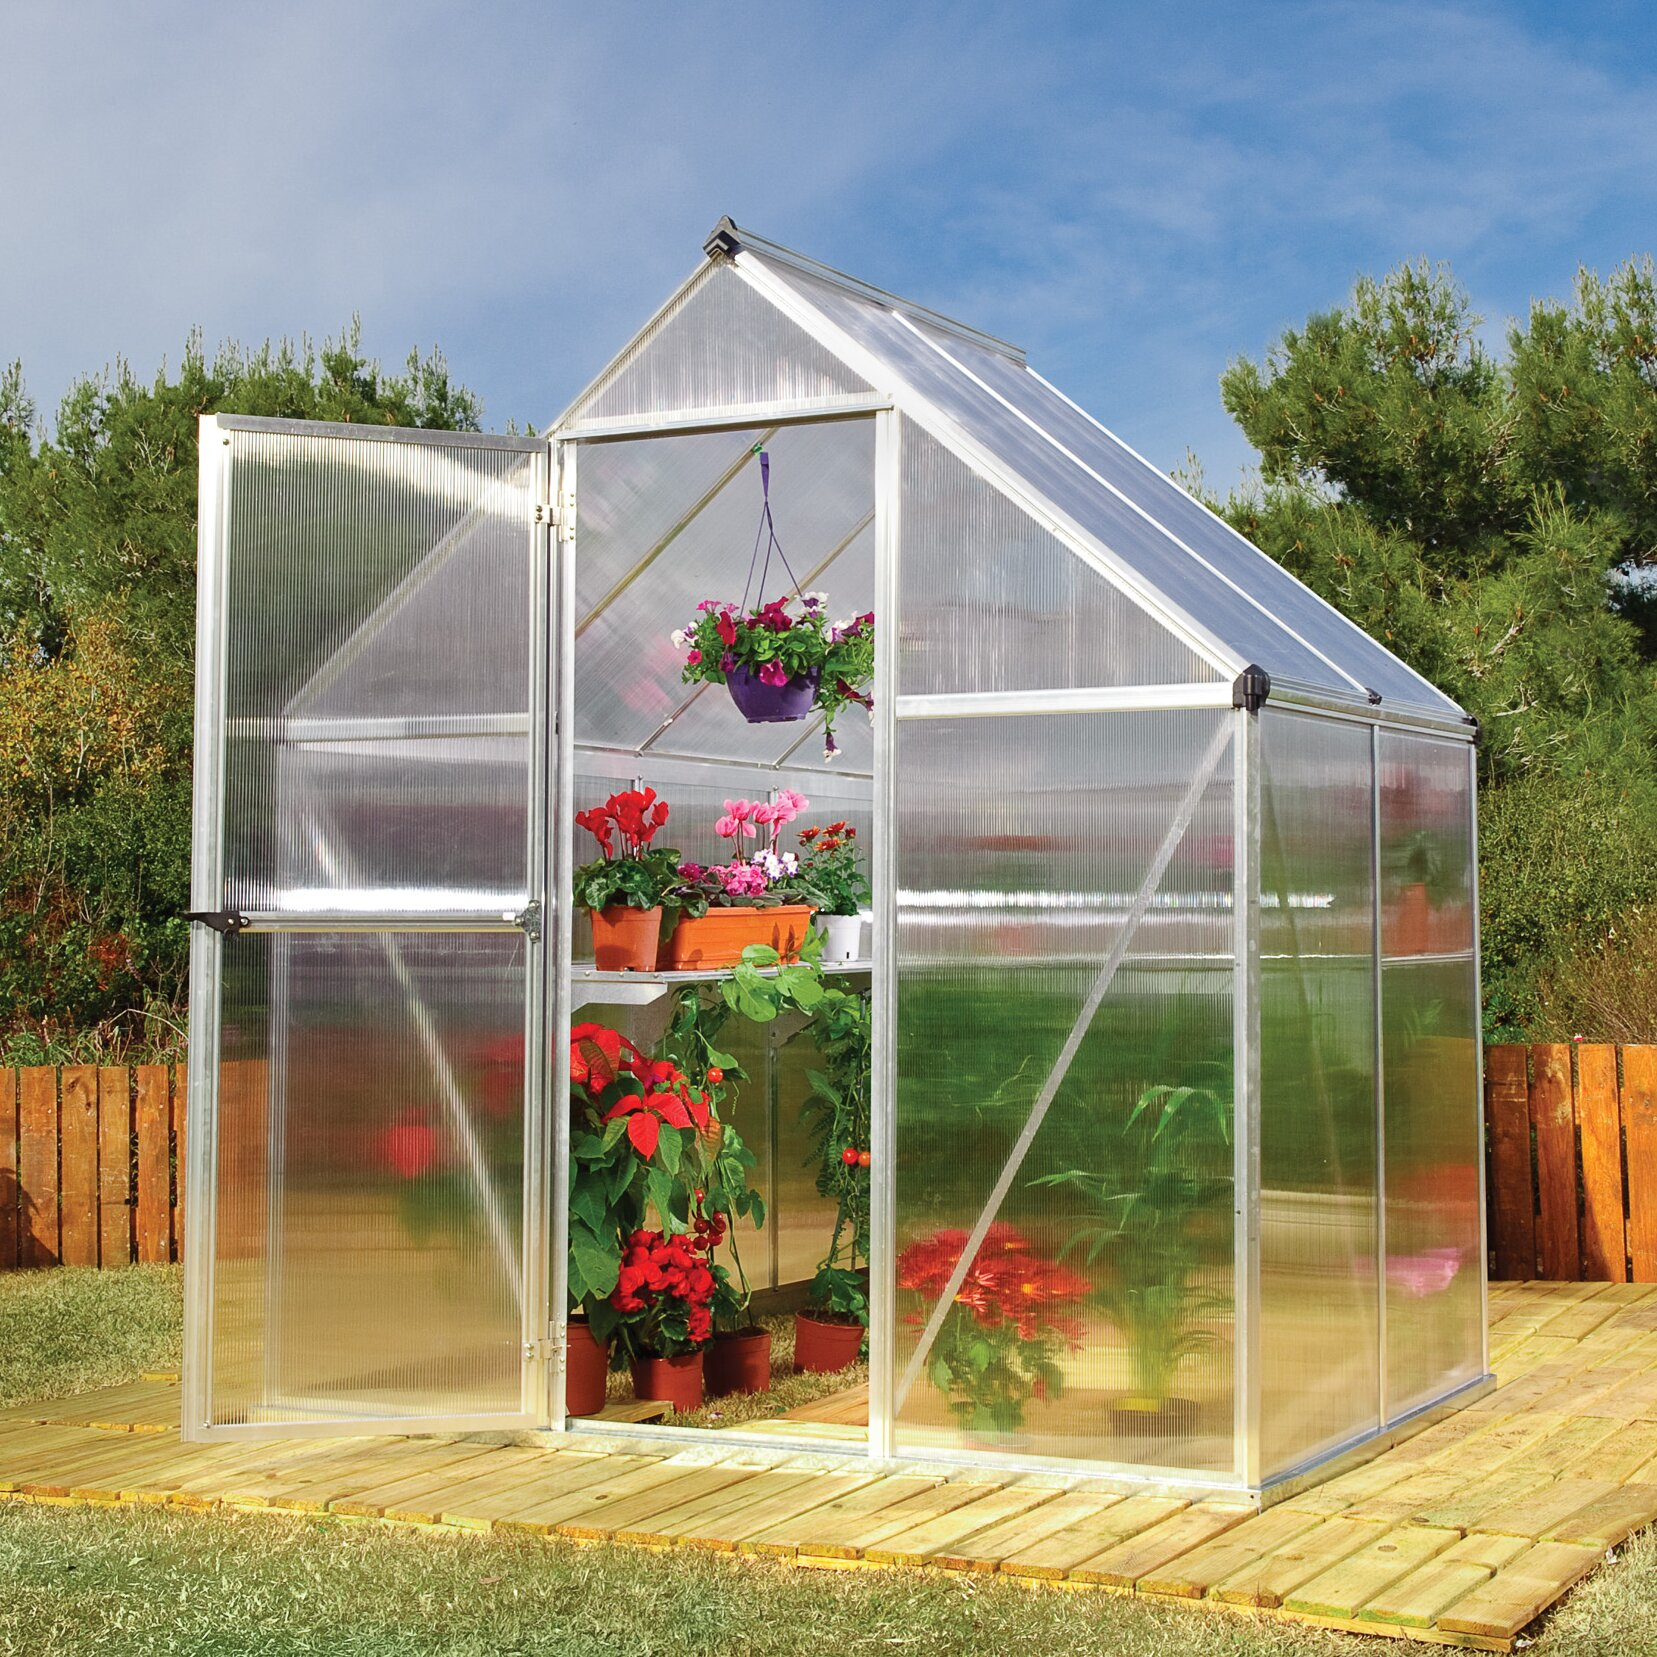 Portable Greenhouse Kits Lowe S : Palram nature twin ft w d greenhouse reviews